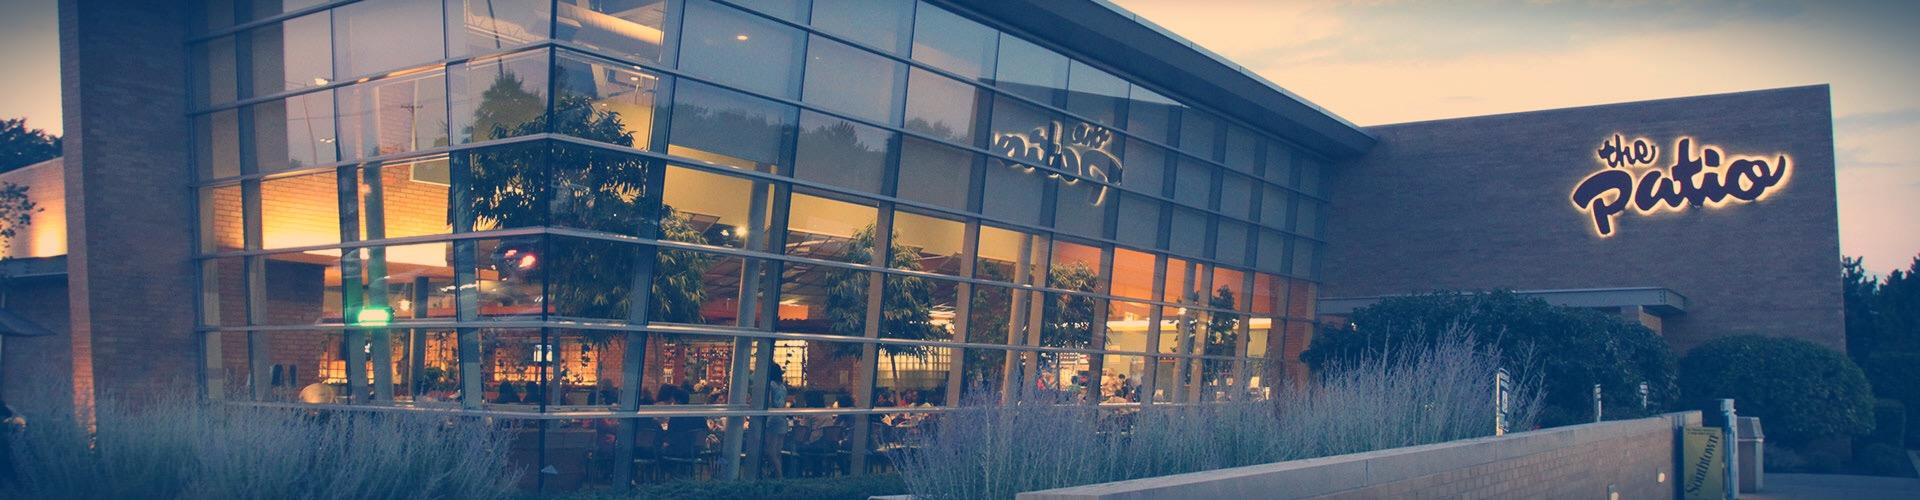 The exterior of The Patio is fanciful and modern.